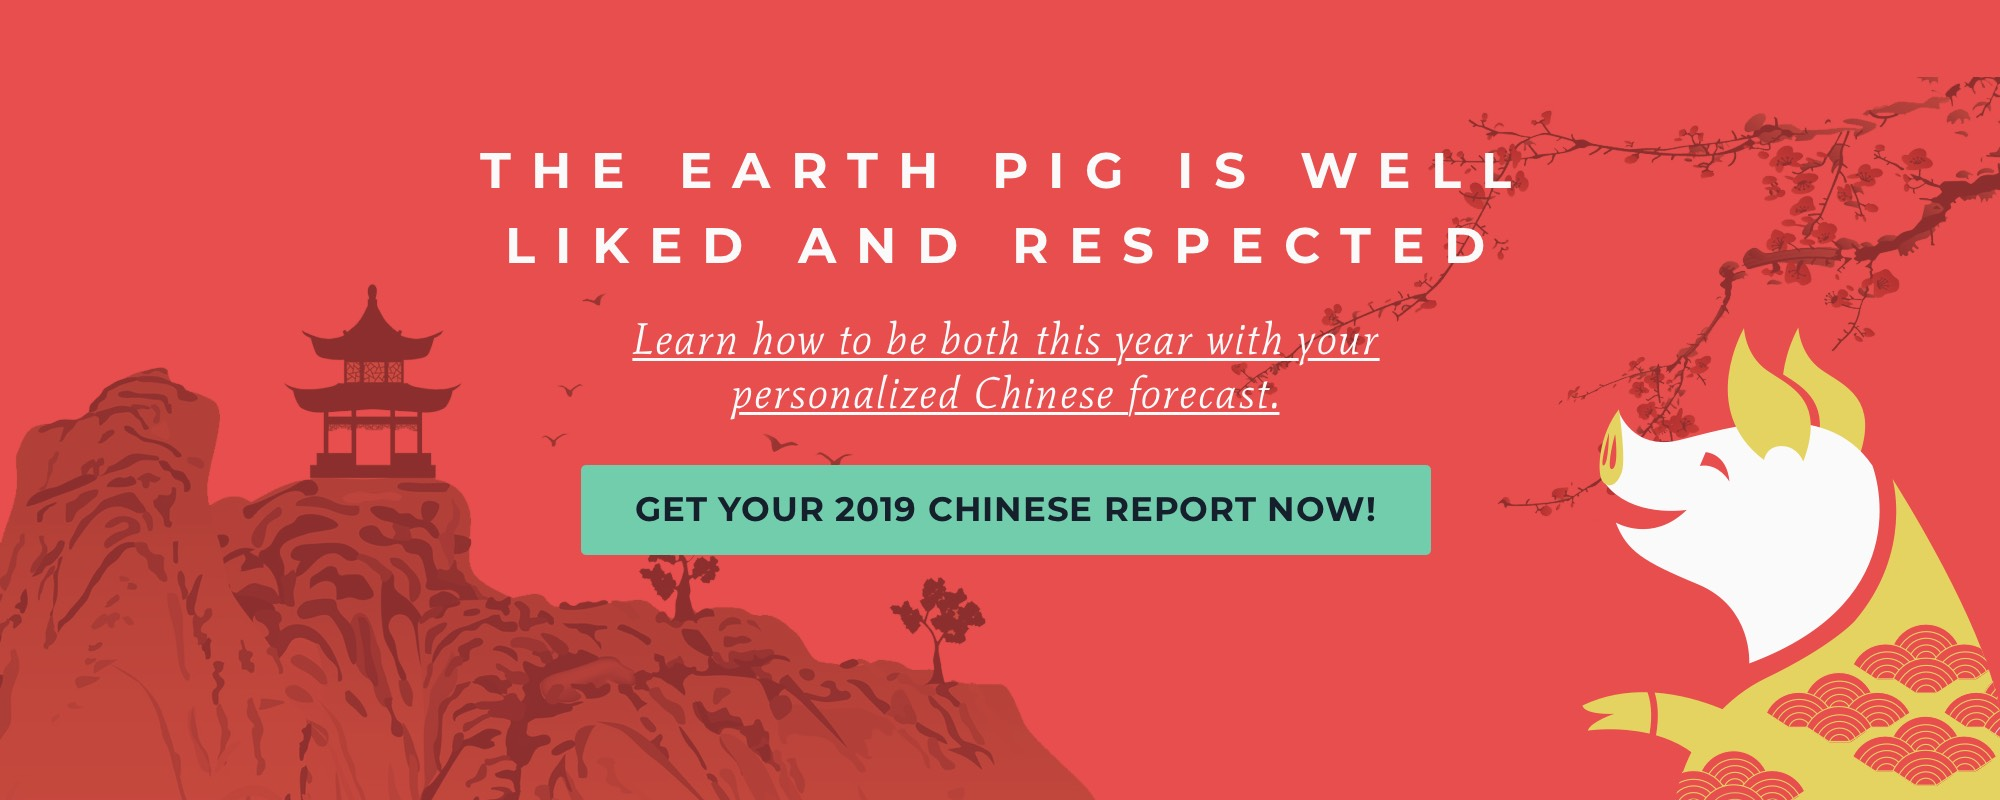 Get your 2019 chinese report